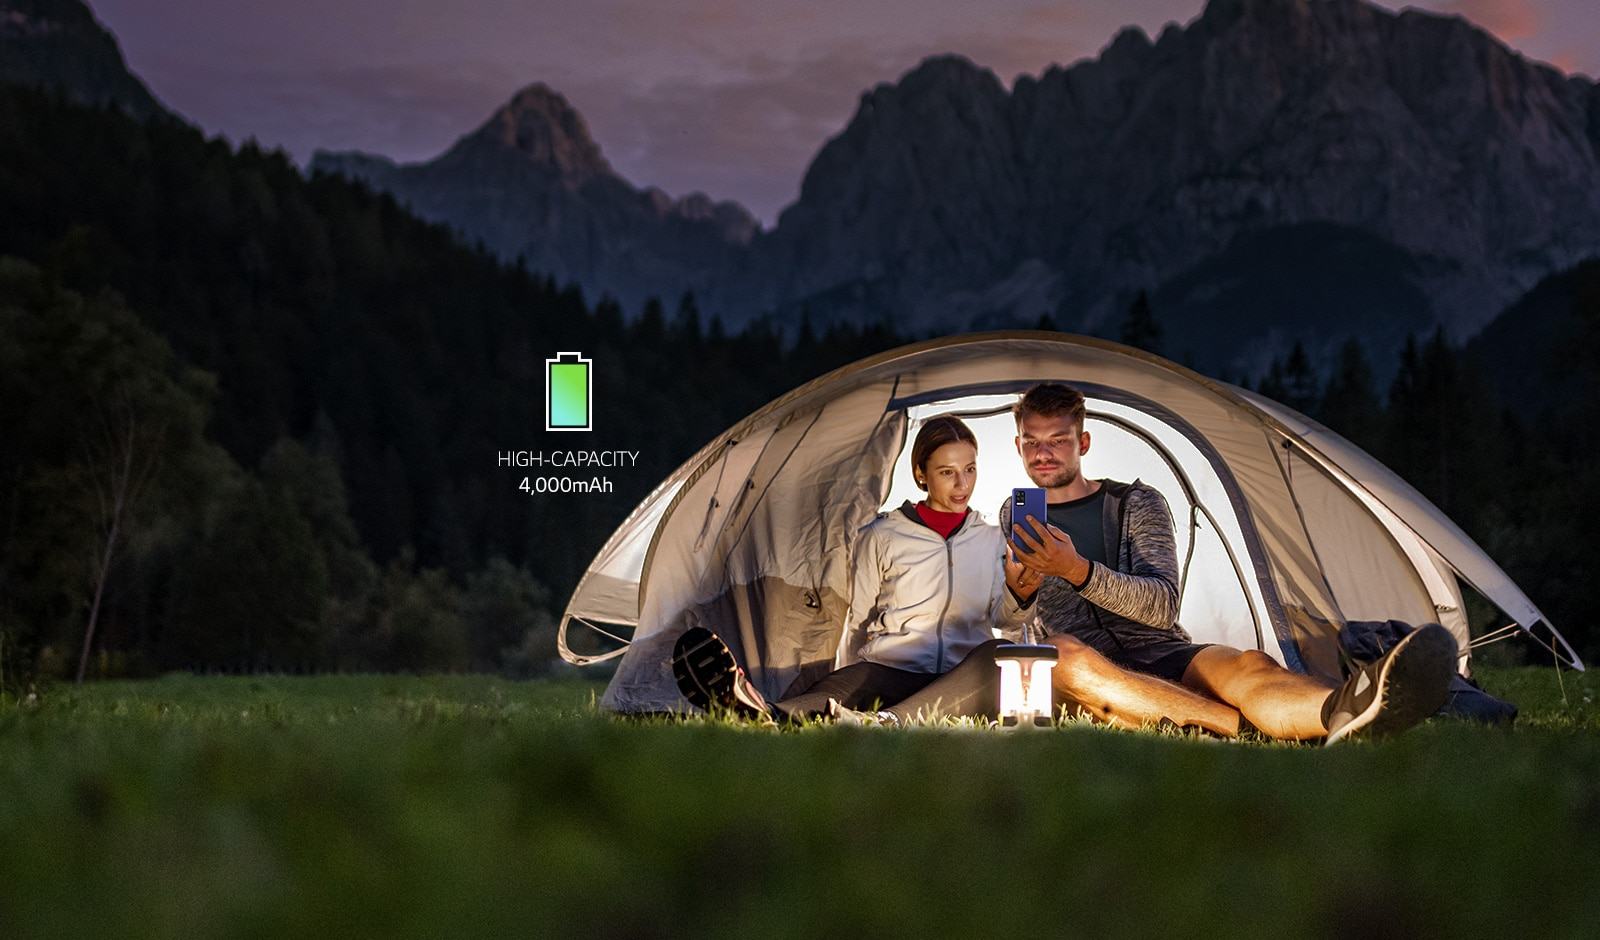 A man and a woman watching a smartphone in a tent in the dark night.